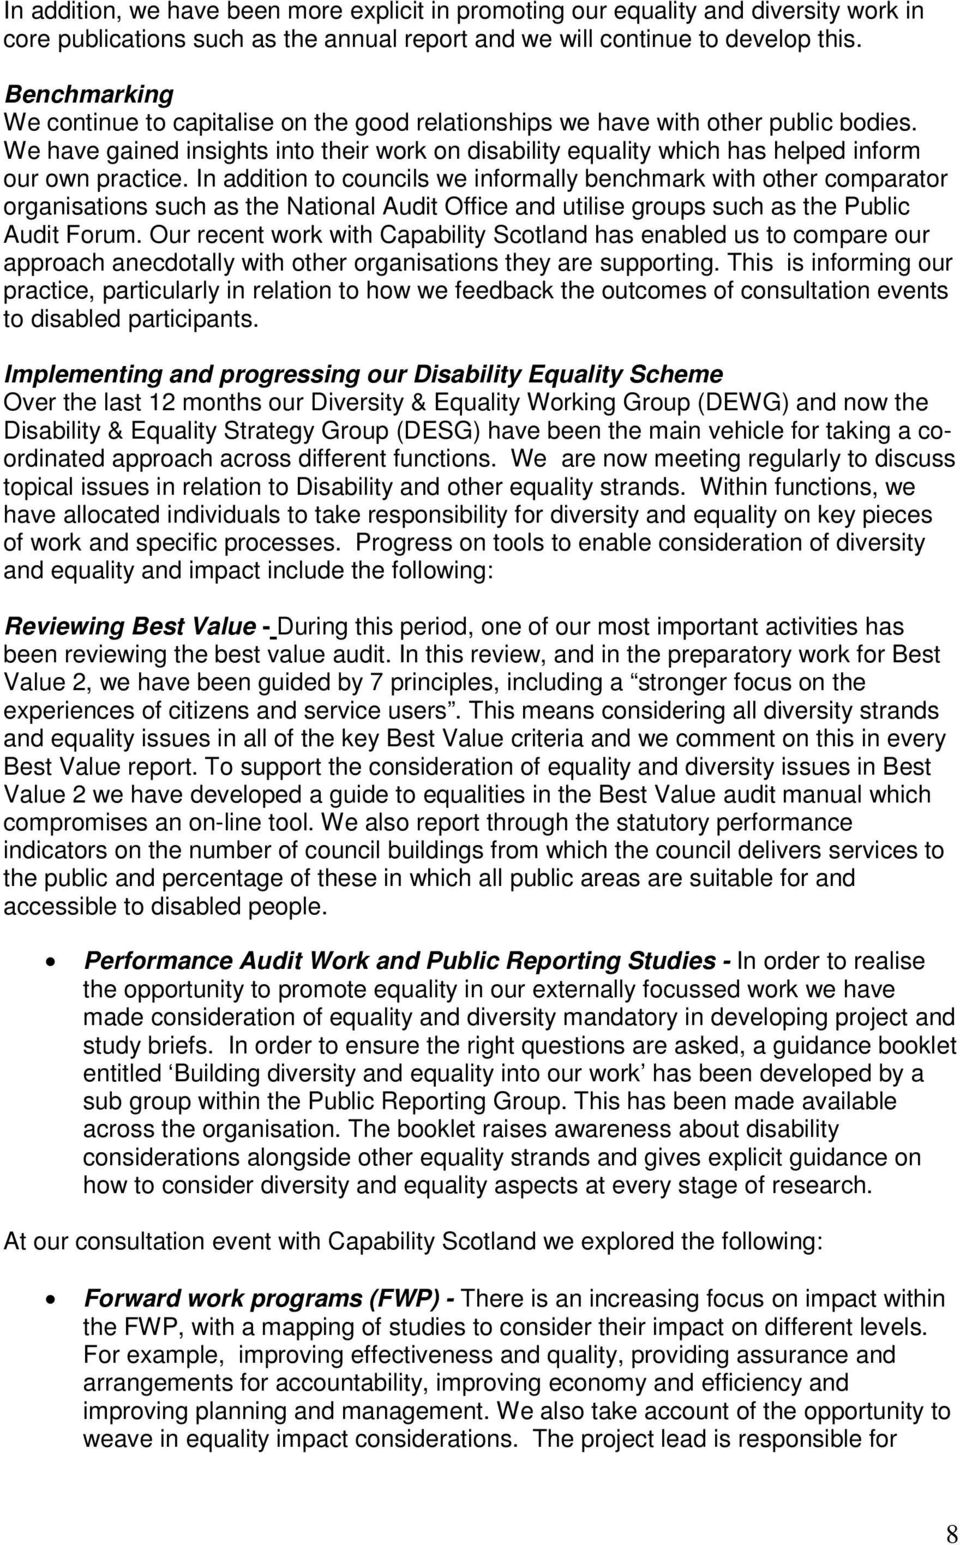 We have gained insights into their work on disability equality which has helped inform our own practice.